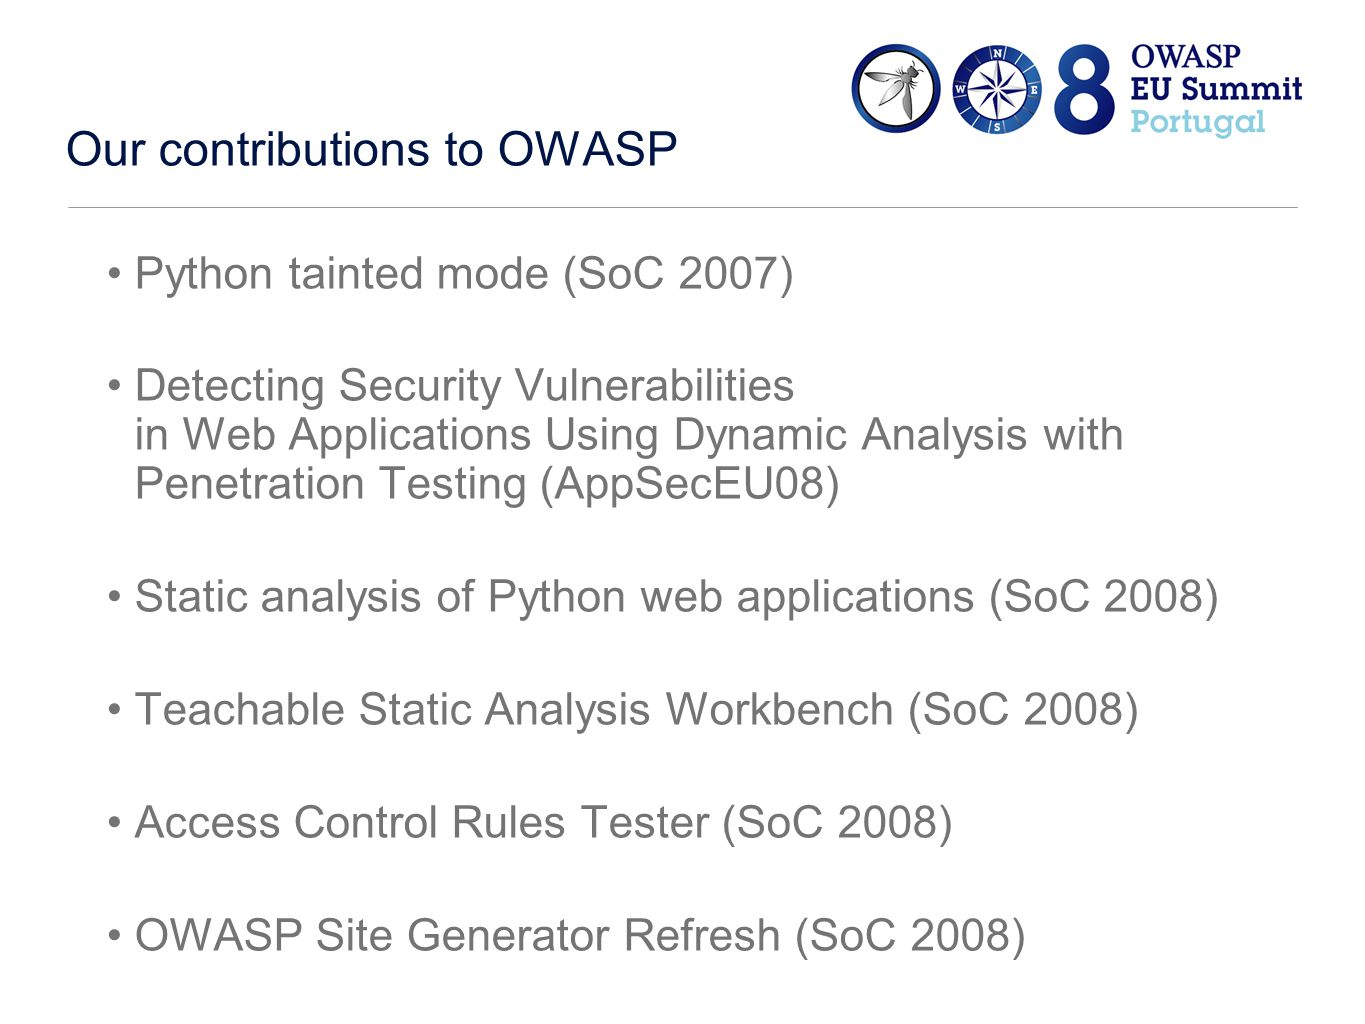 Our contributions to OWASP Python tainted mode (SoC 2007) Detecting Security Vulnerabilities in Web Applications Using Dynamic Analysis with Penetration Testing (AppSecEU08) Static analysis of Python web applications (SoC 2008) Teachable Static Analysis Workbench (SoC 2008) Access Control Rules Tester (SoC 2008) OWASP Site Generator Refresh (SoC 2008)